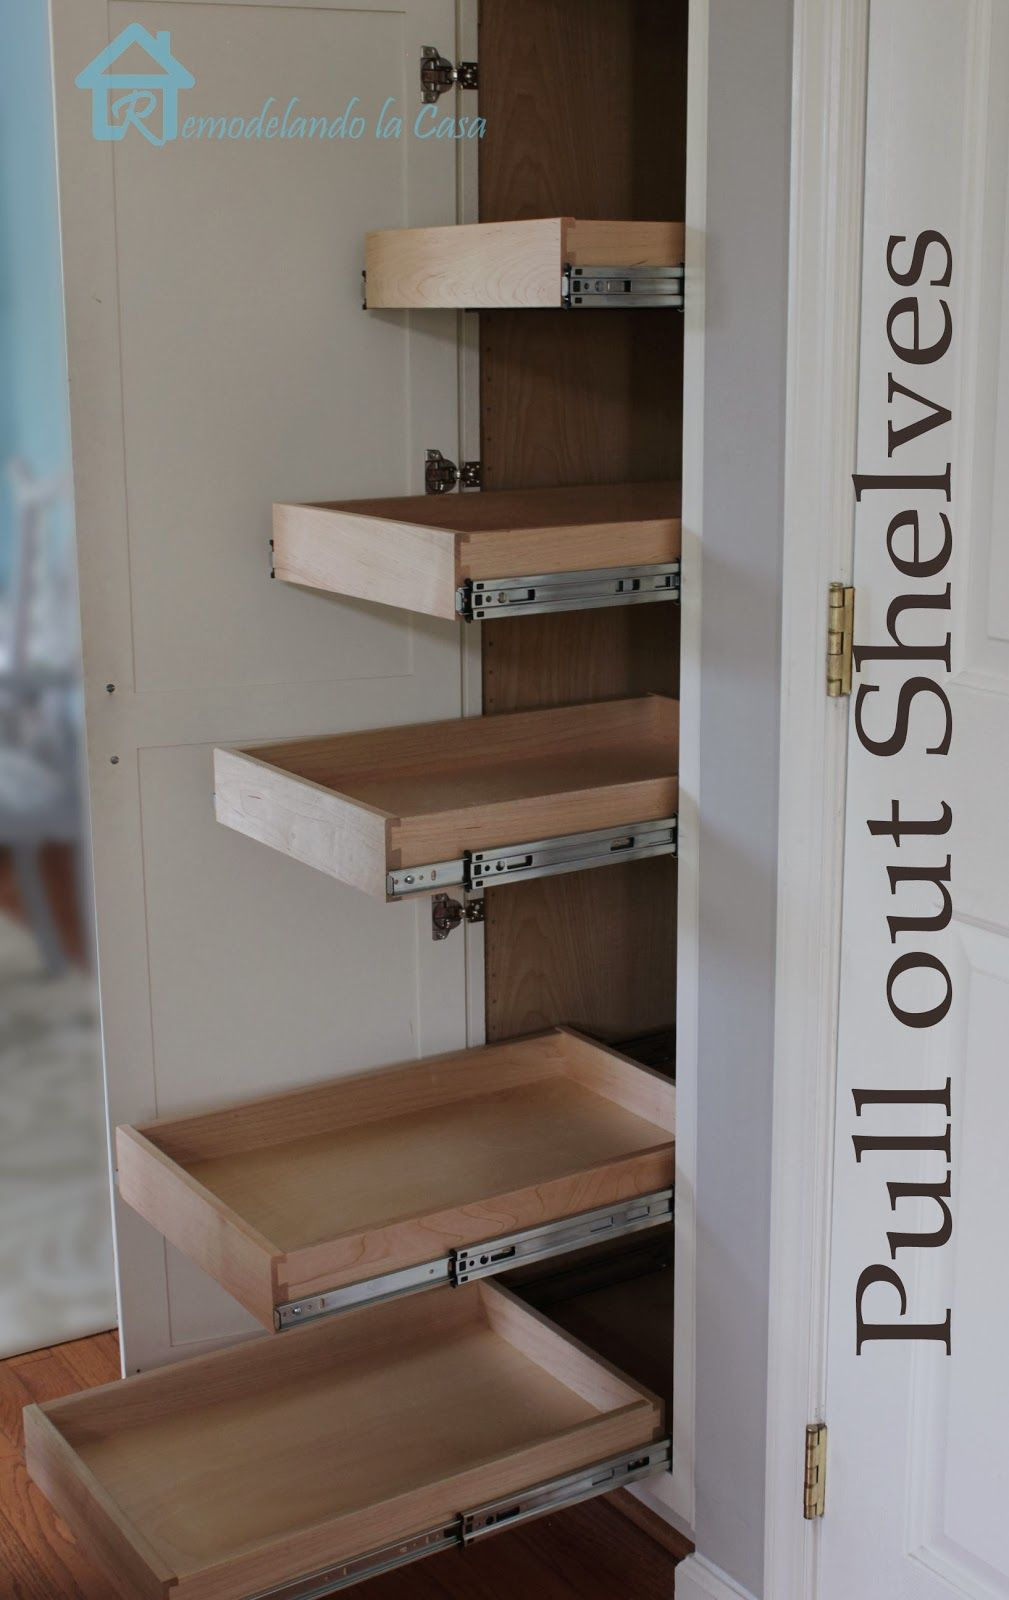 Kitchen Organization   Pull Out Shelves In Pantry. I So Need This. DIY  Really Practical Information.